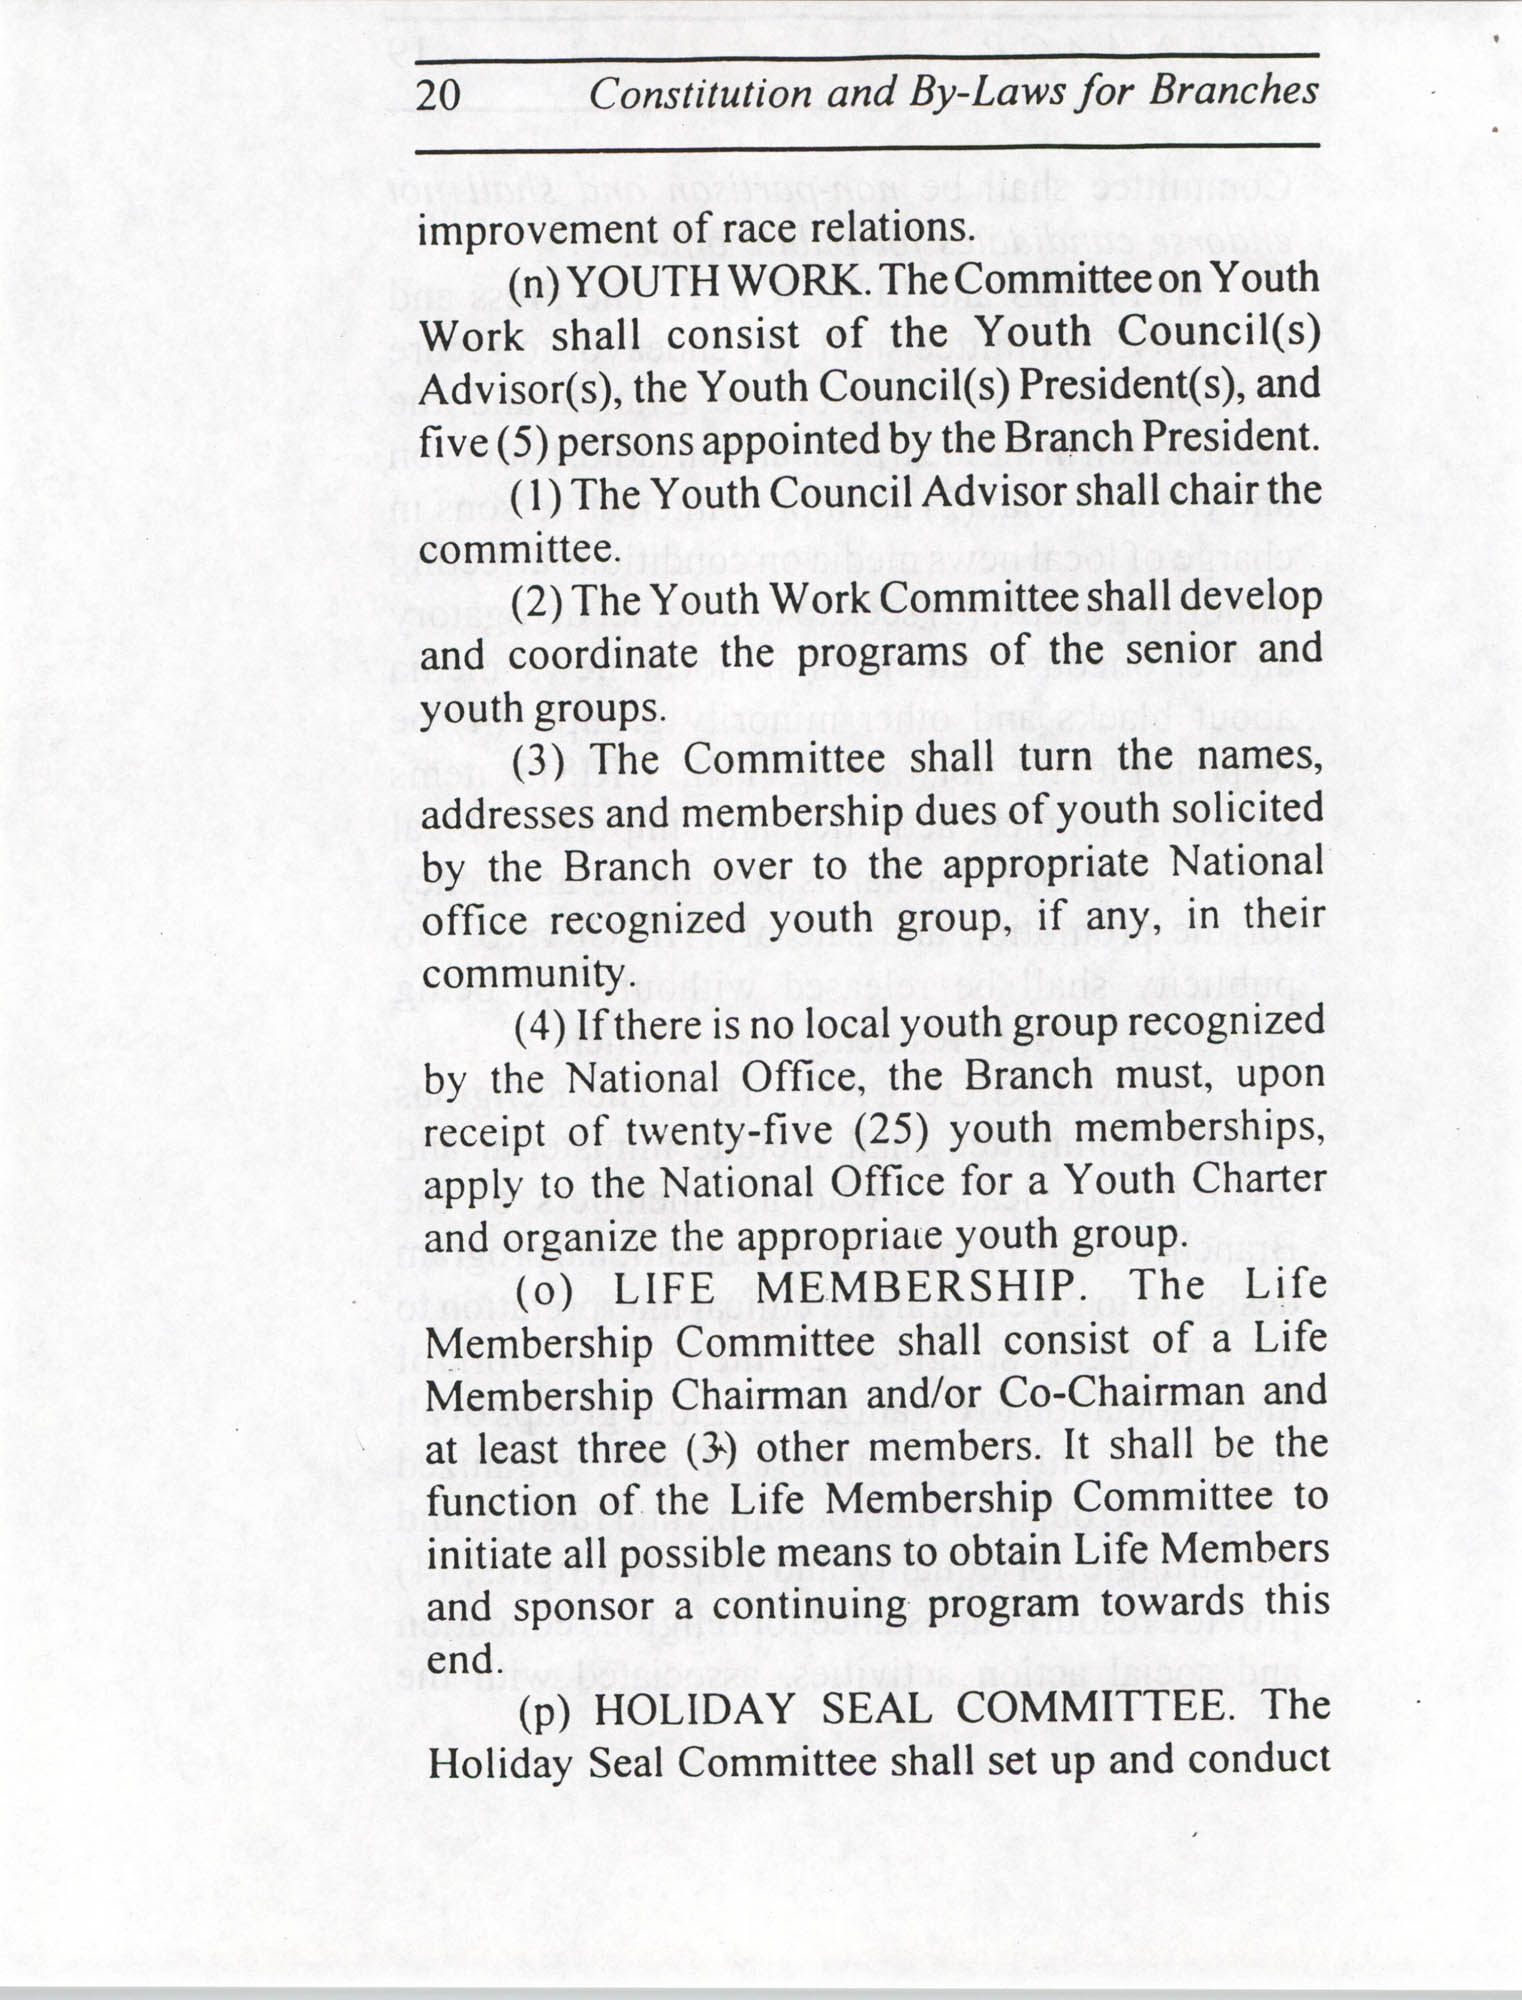 Constitution and By-Laws for Branches of the NAACP, July 1994, Page 20